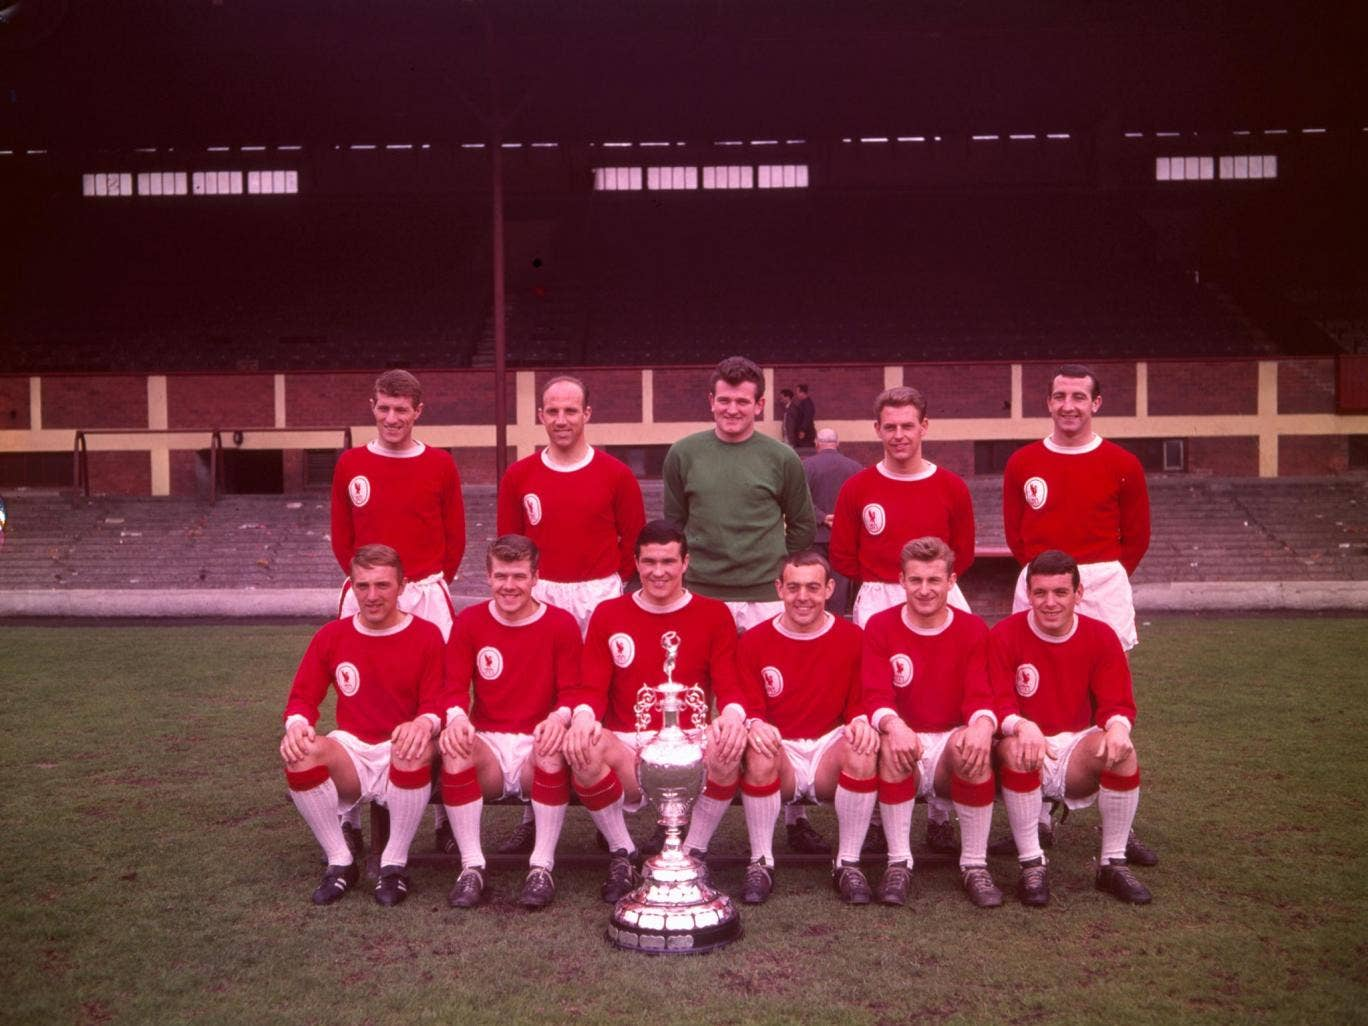 Bill Shankly's Liverpool side of 1963-64 swept all before them